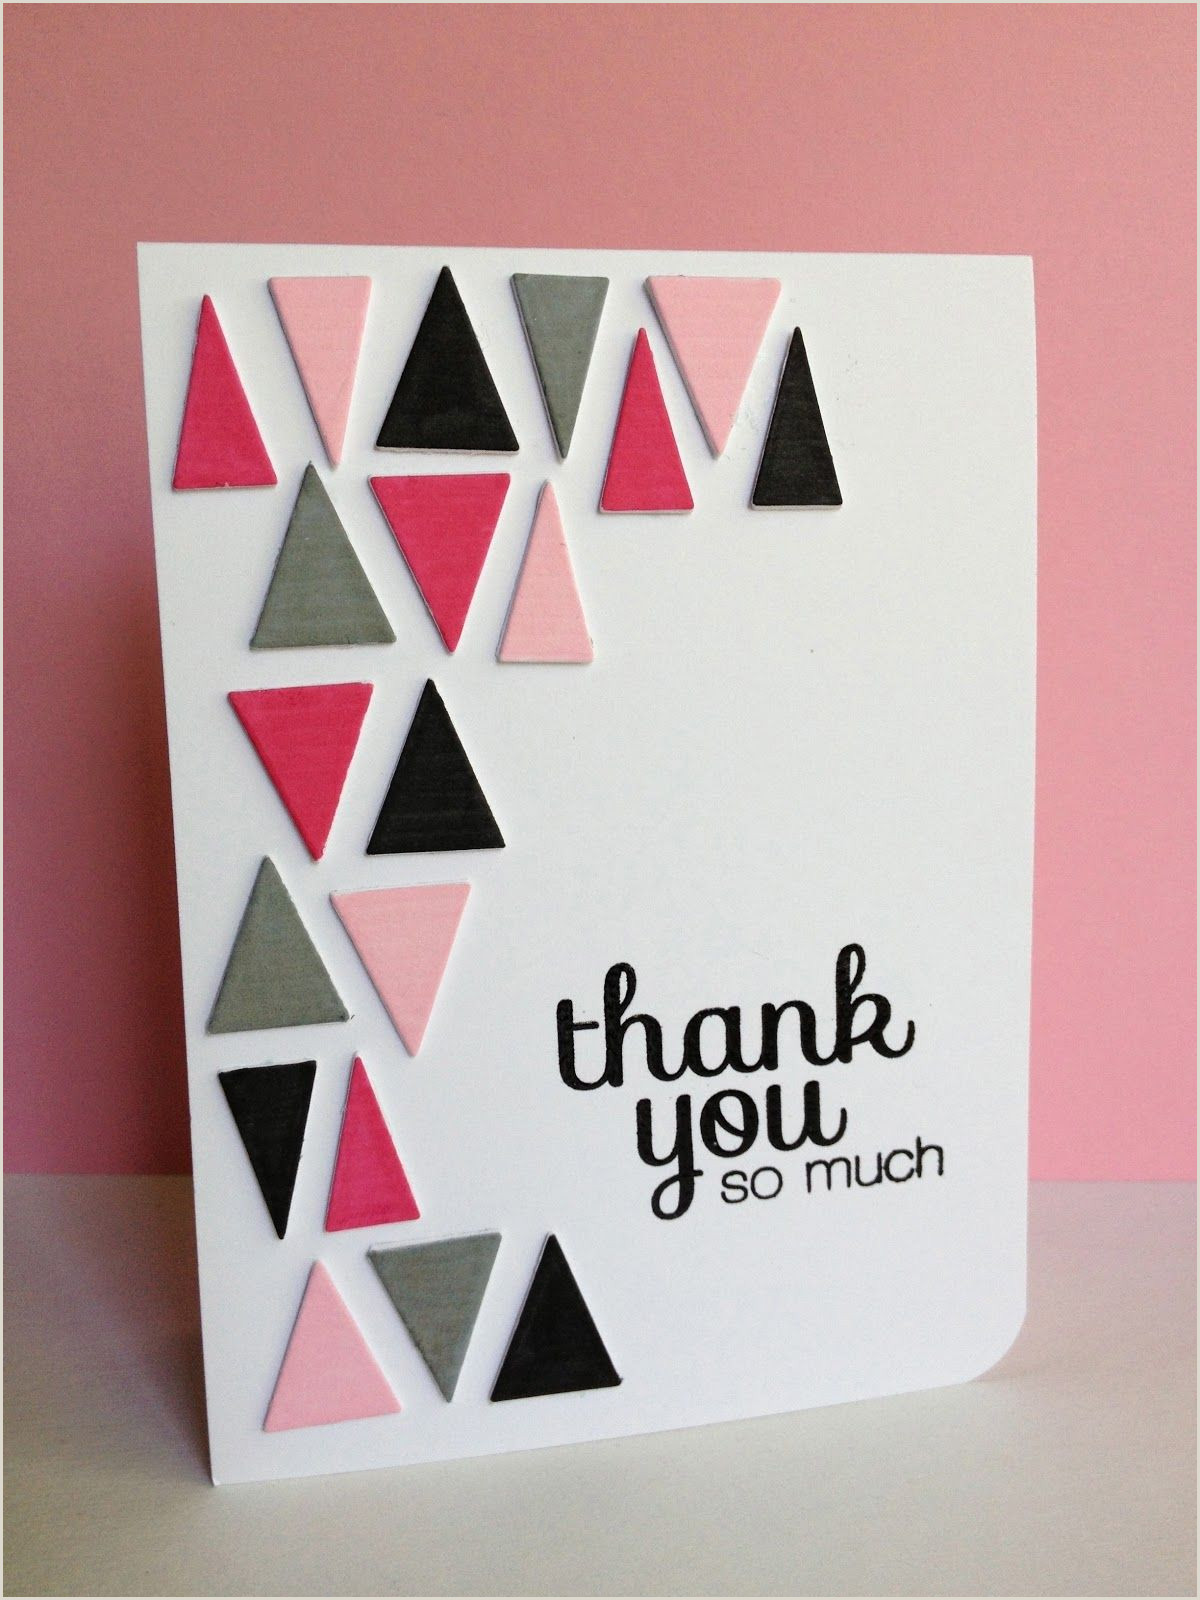 Thank You Card Design Ideas Pin On Homemade Thank You Cards